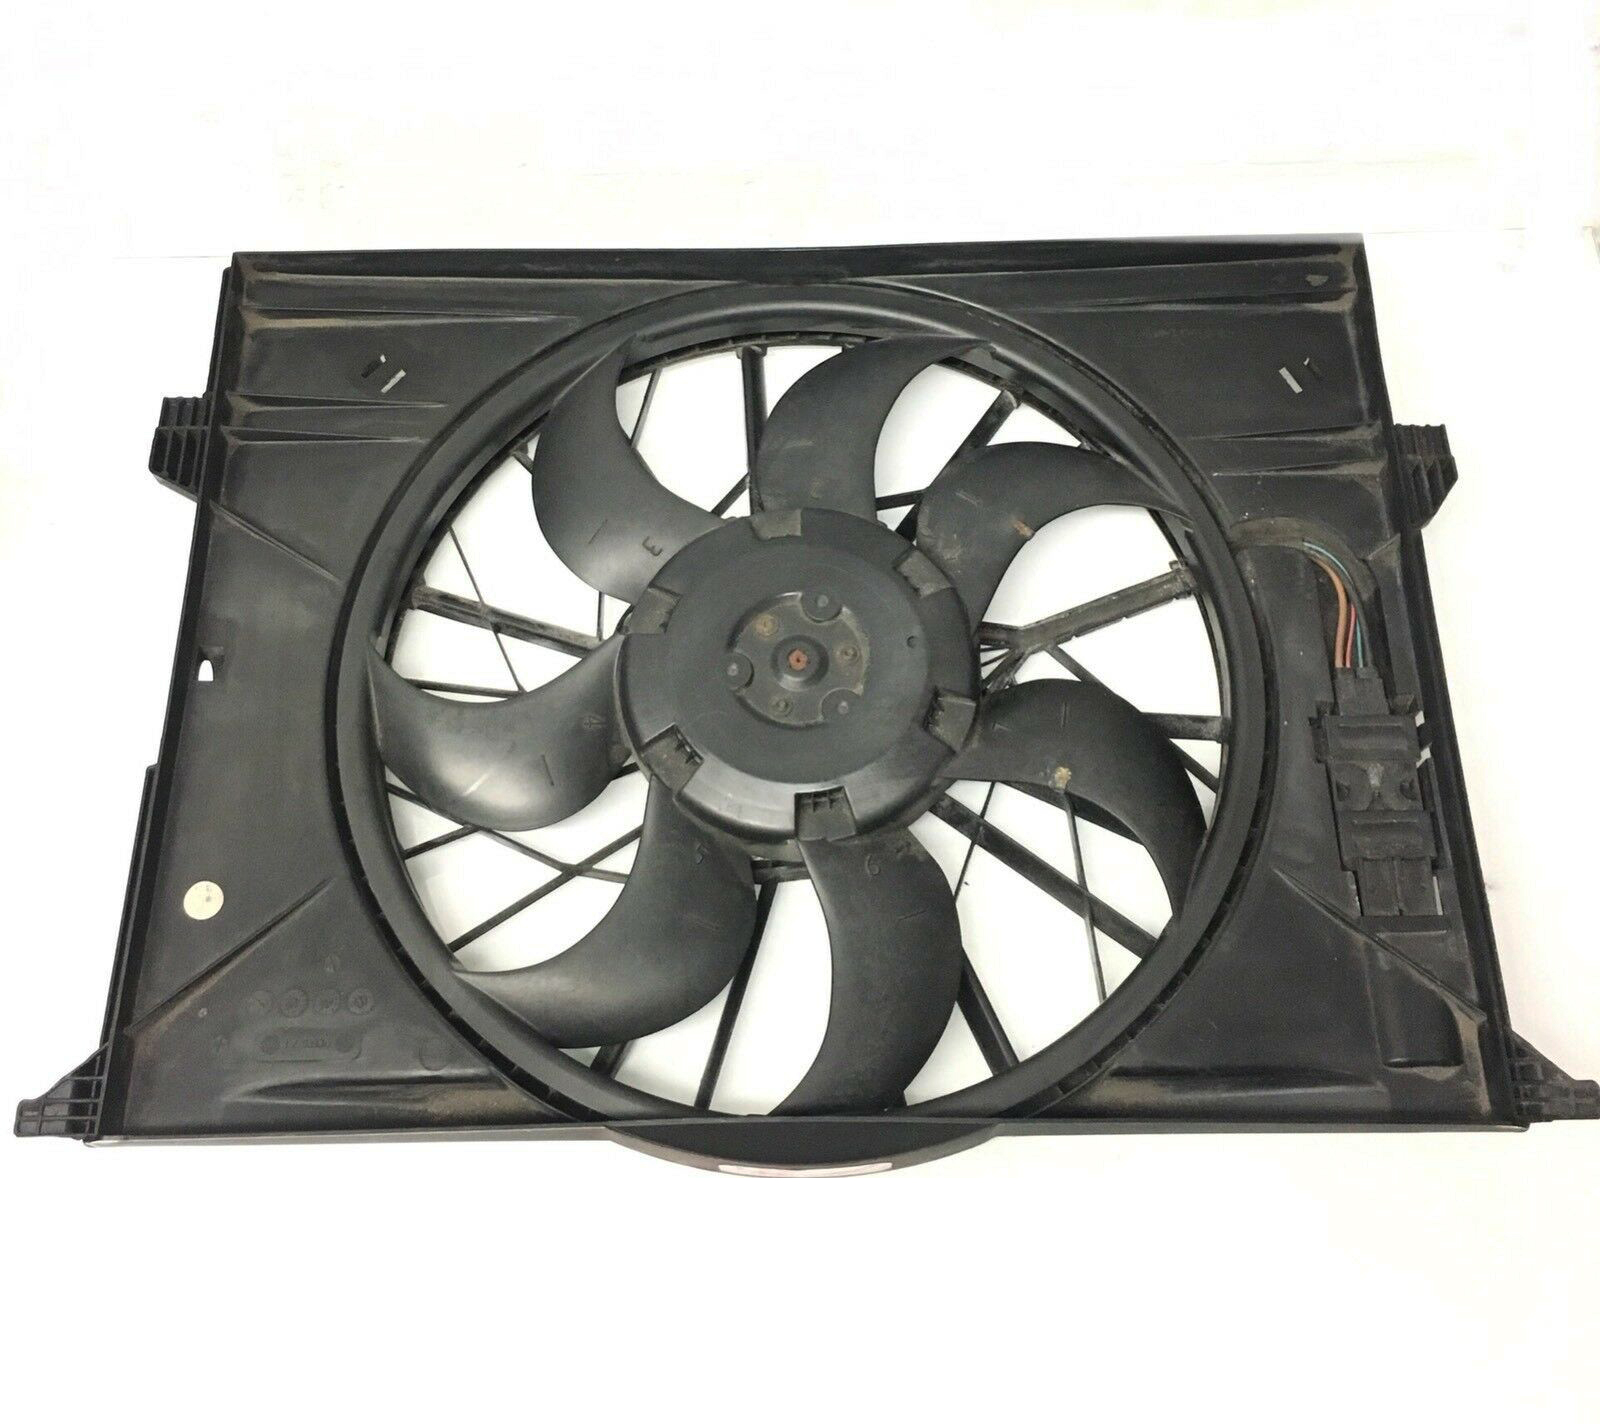 For Mercedes W210 E320 Fan Shroud Belt Driven Fan Between Radiator /& Engine